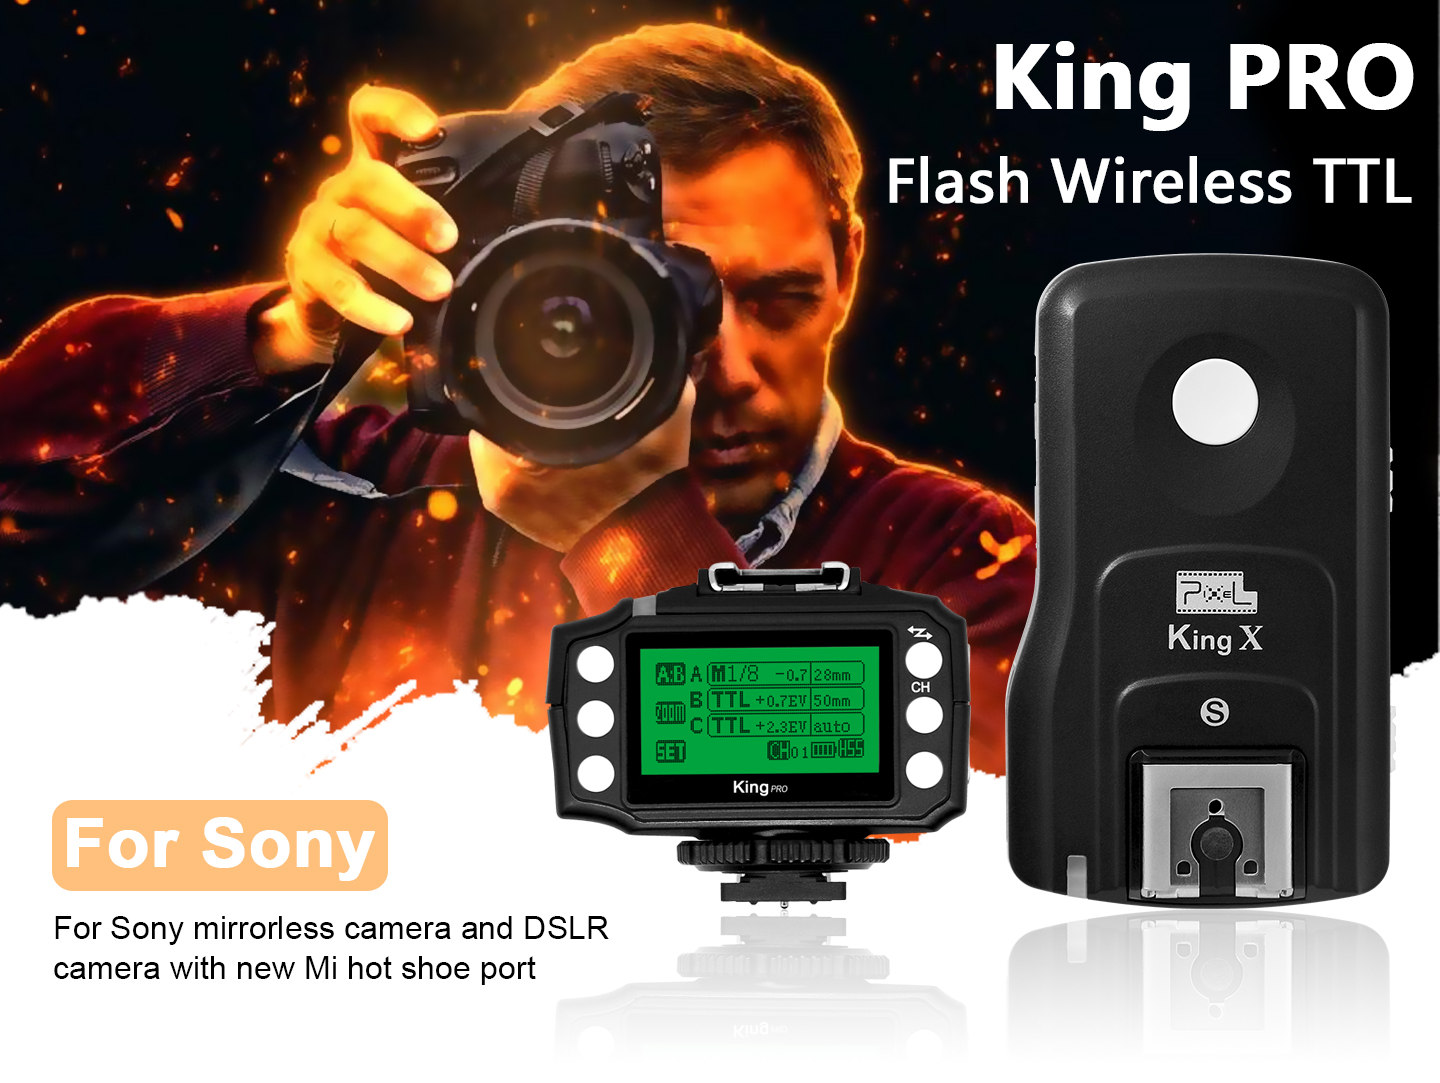 King PRO Flash Wireless TTL